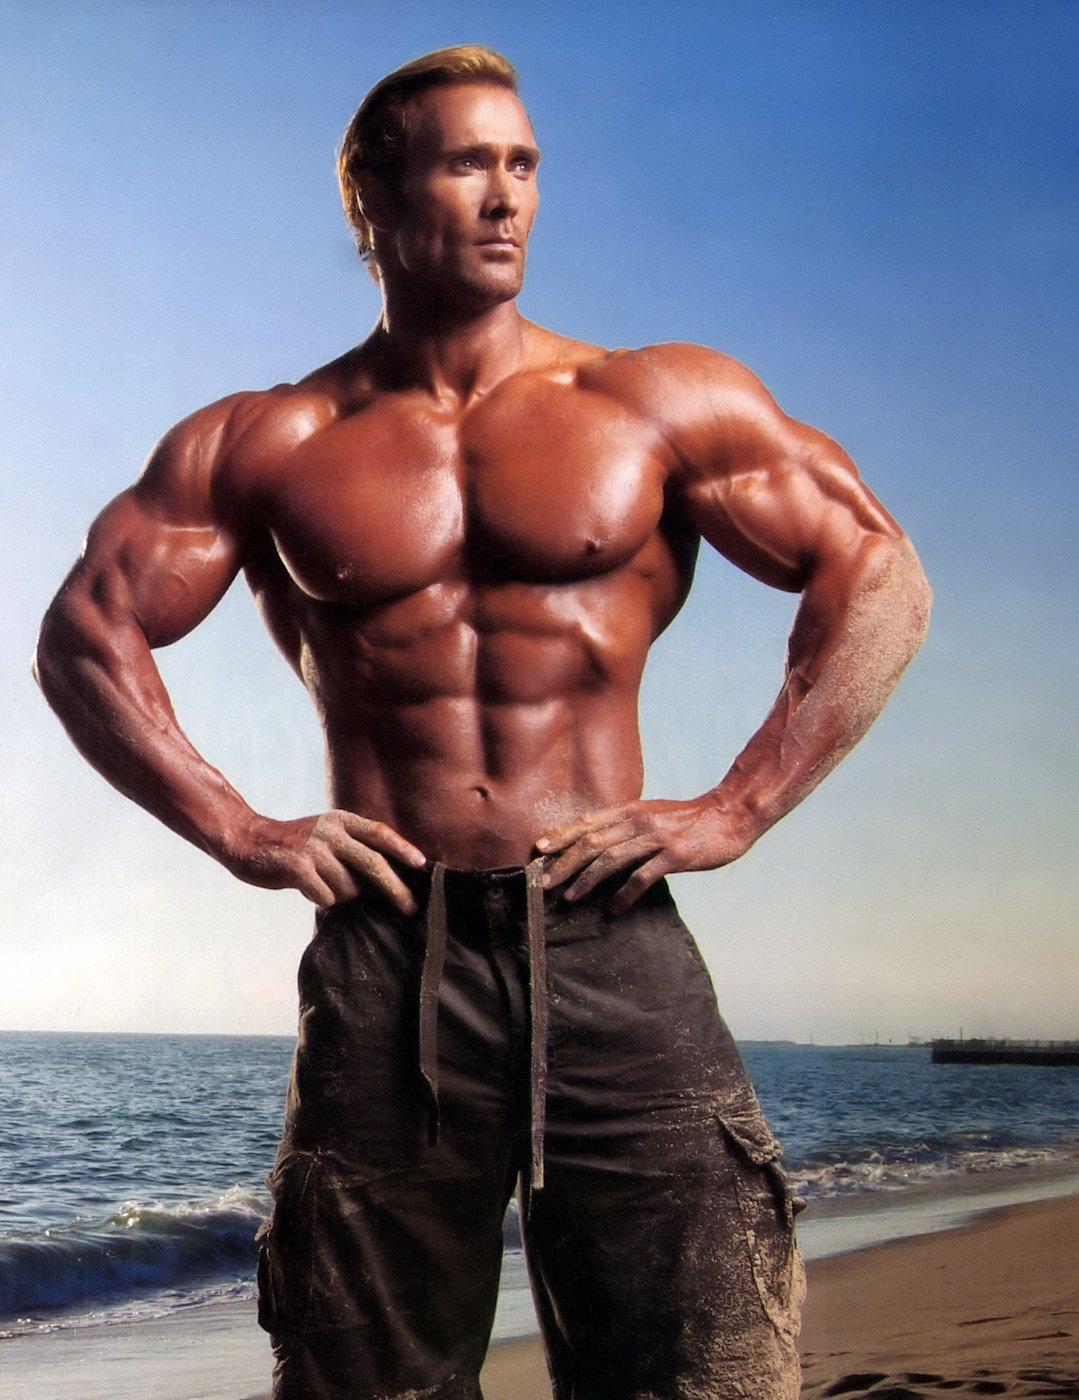 Mike O'Hearn - Featured Athlete - Evolution of Bodybuilding